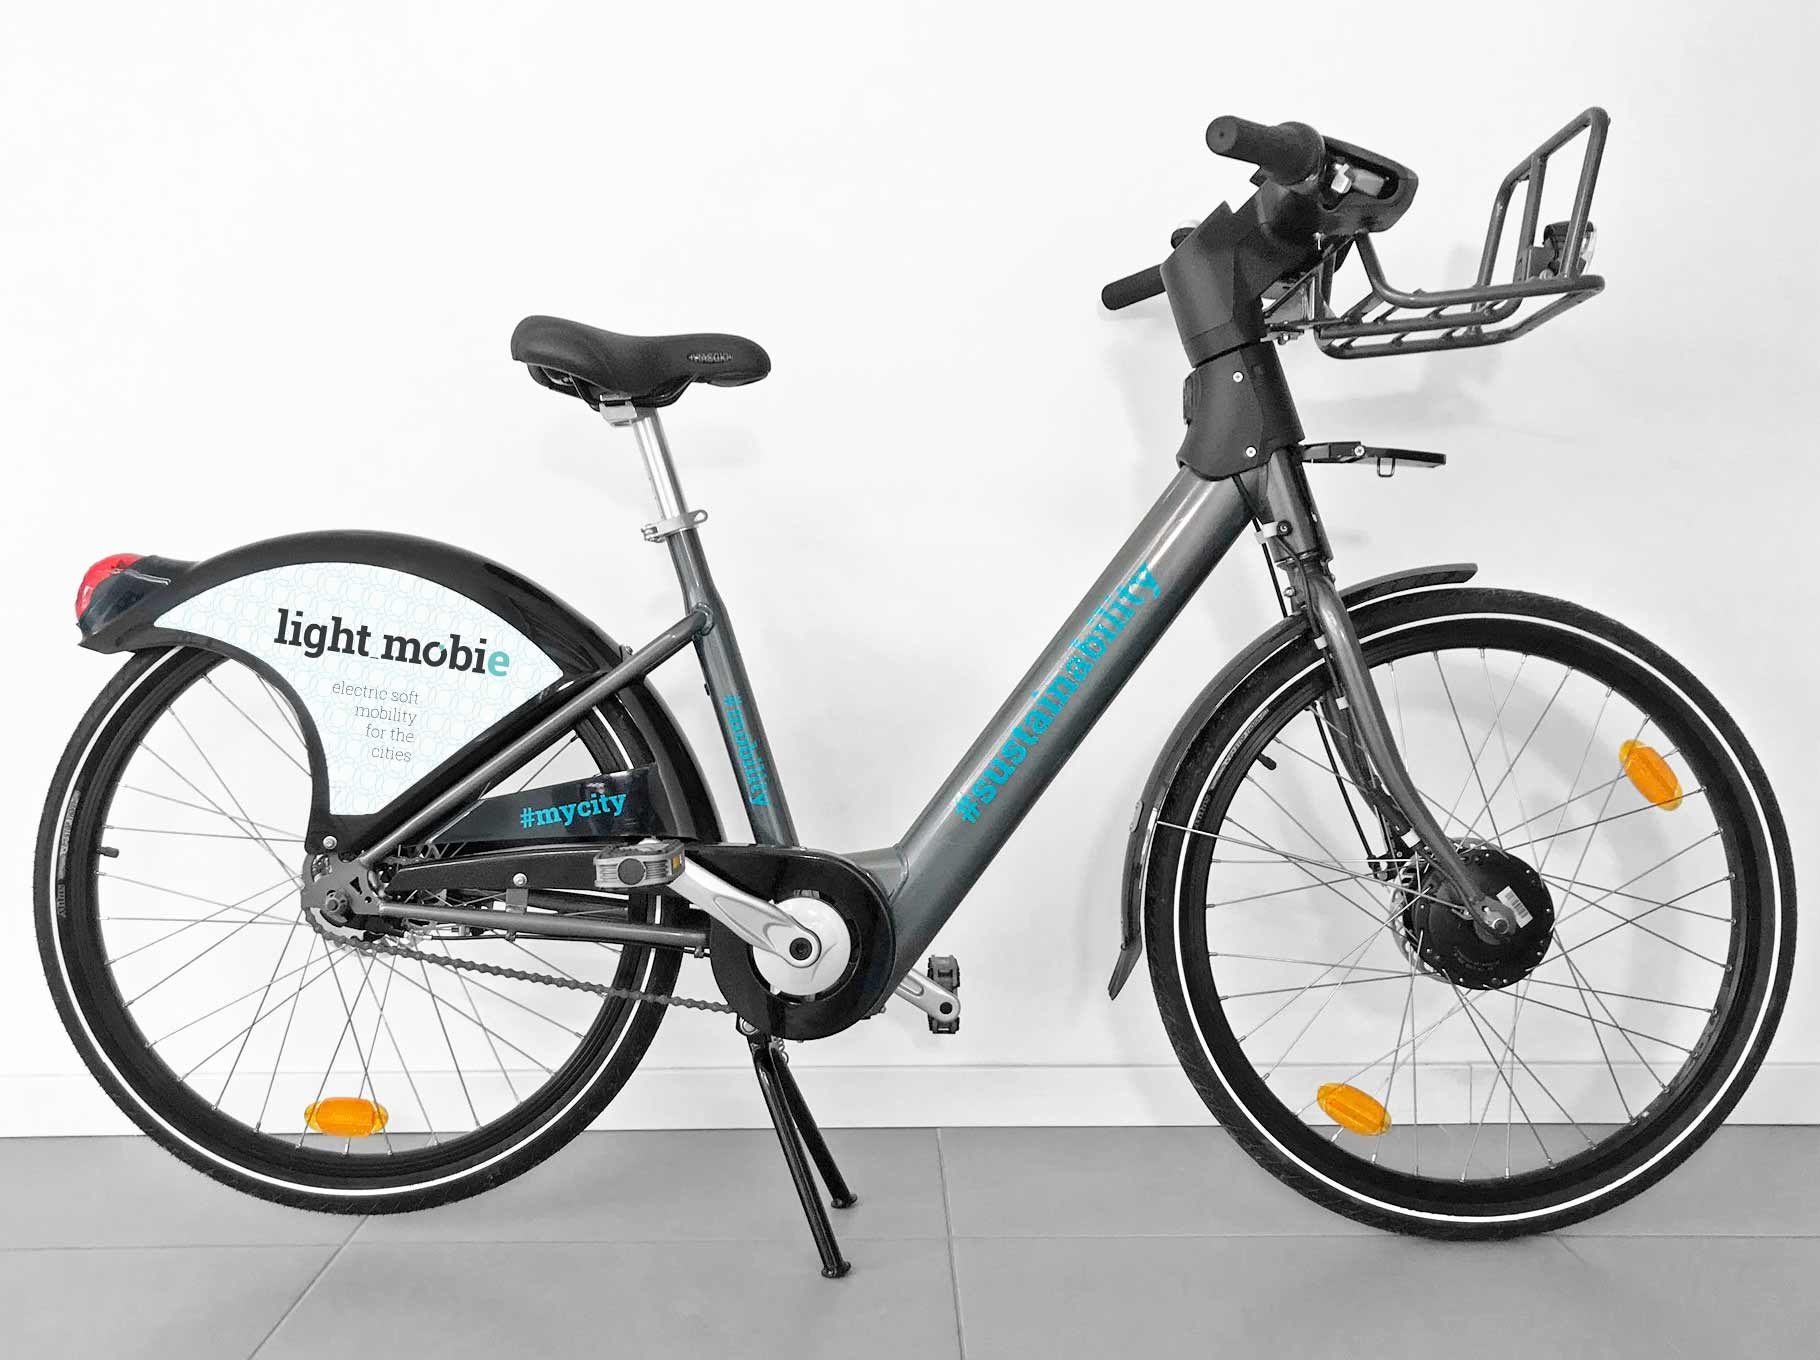 bicicleta partilhada Bike sharing urban electric